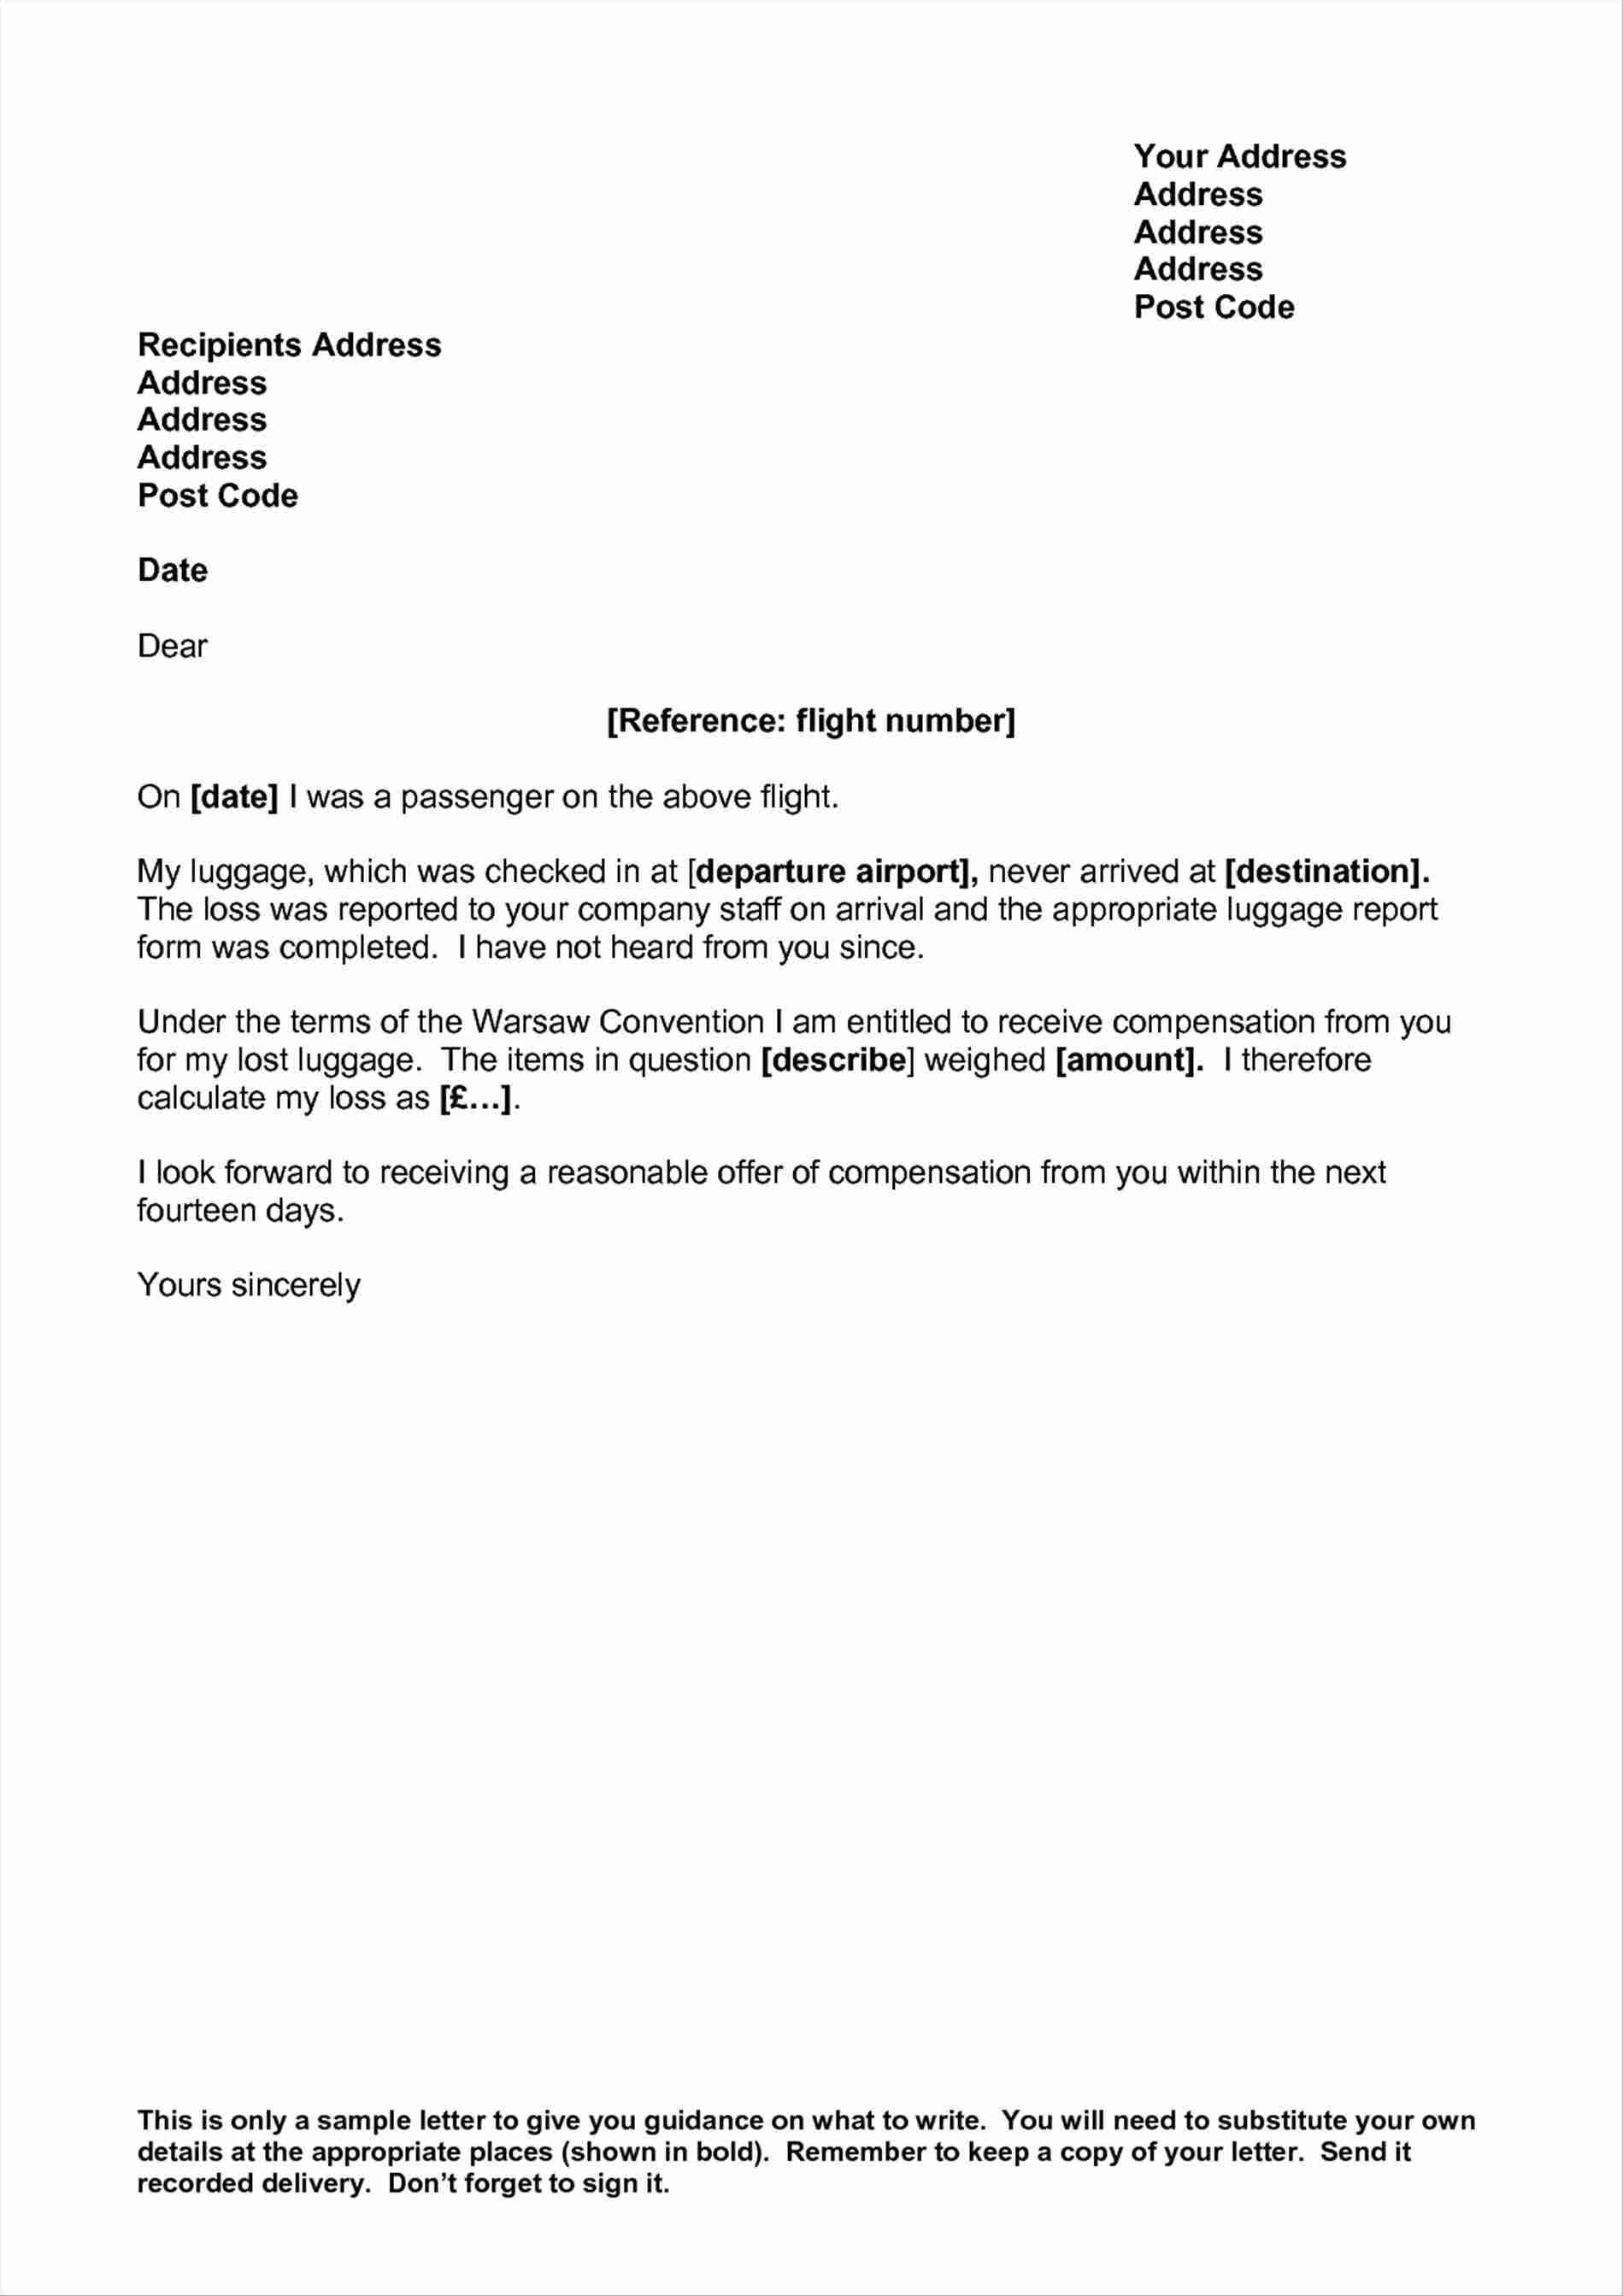 Flight Delay Compensation Letter Template - Professional Letter format Second Page Fresh Luggage Claim Letter